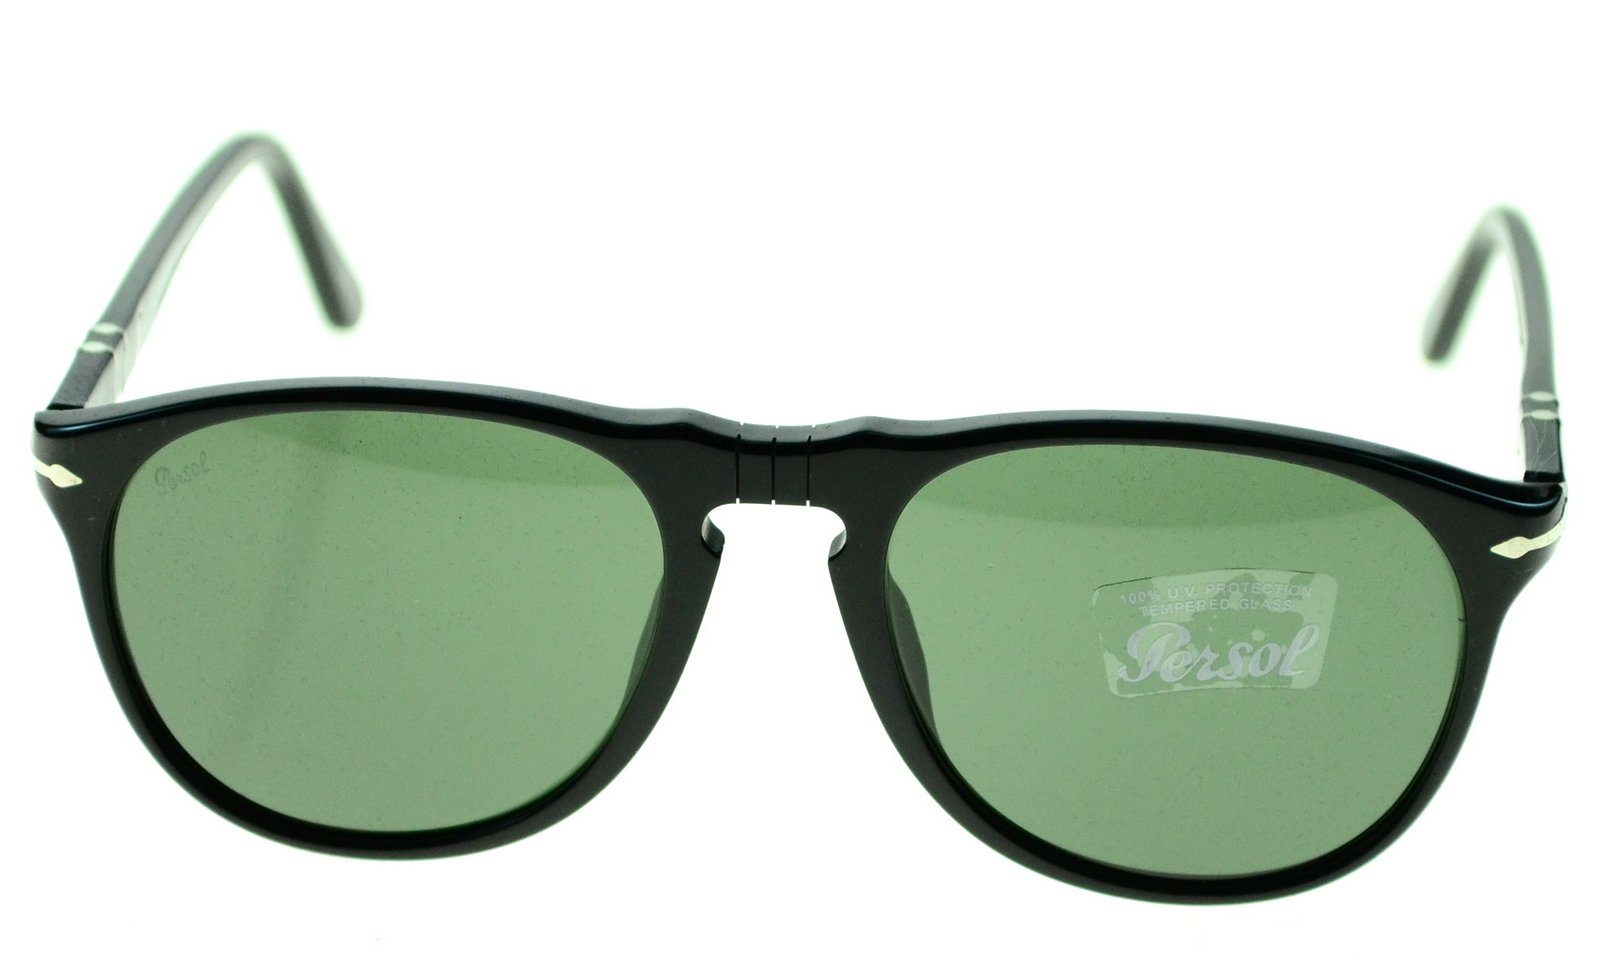 87da1928b10 Men s Persol Sunglasses Ebay